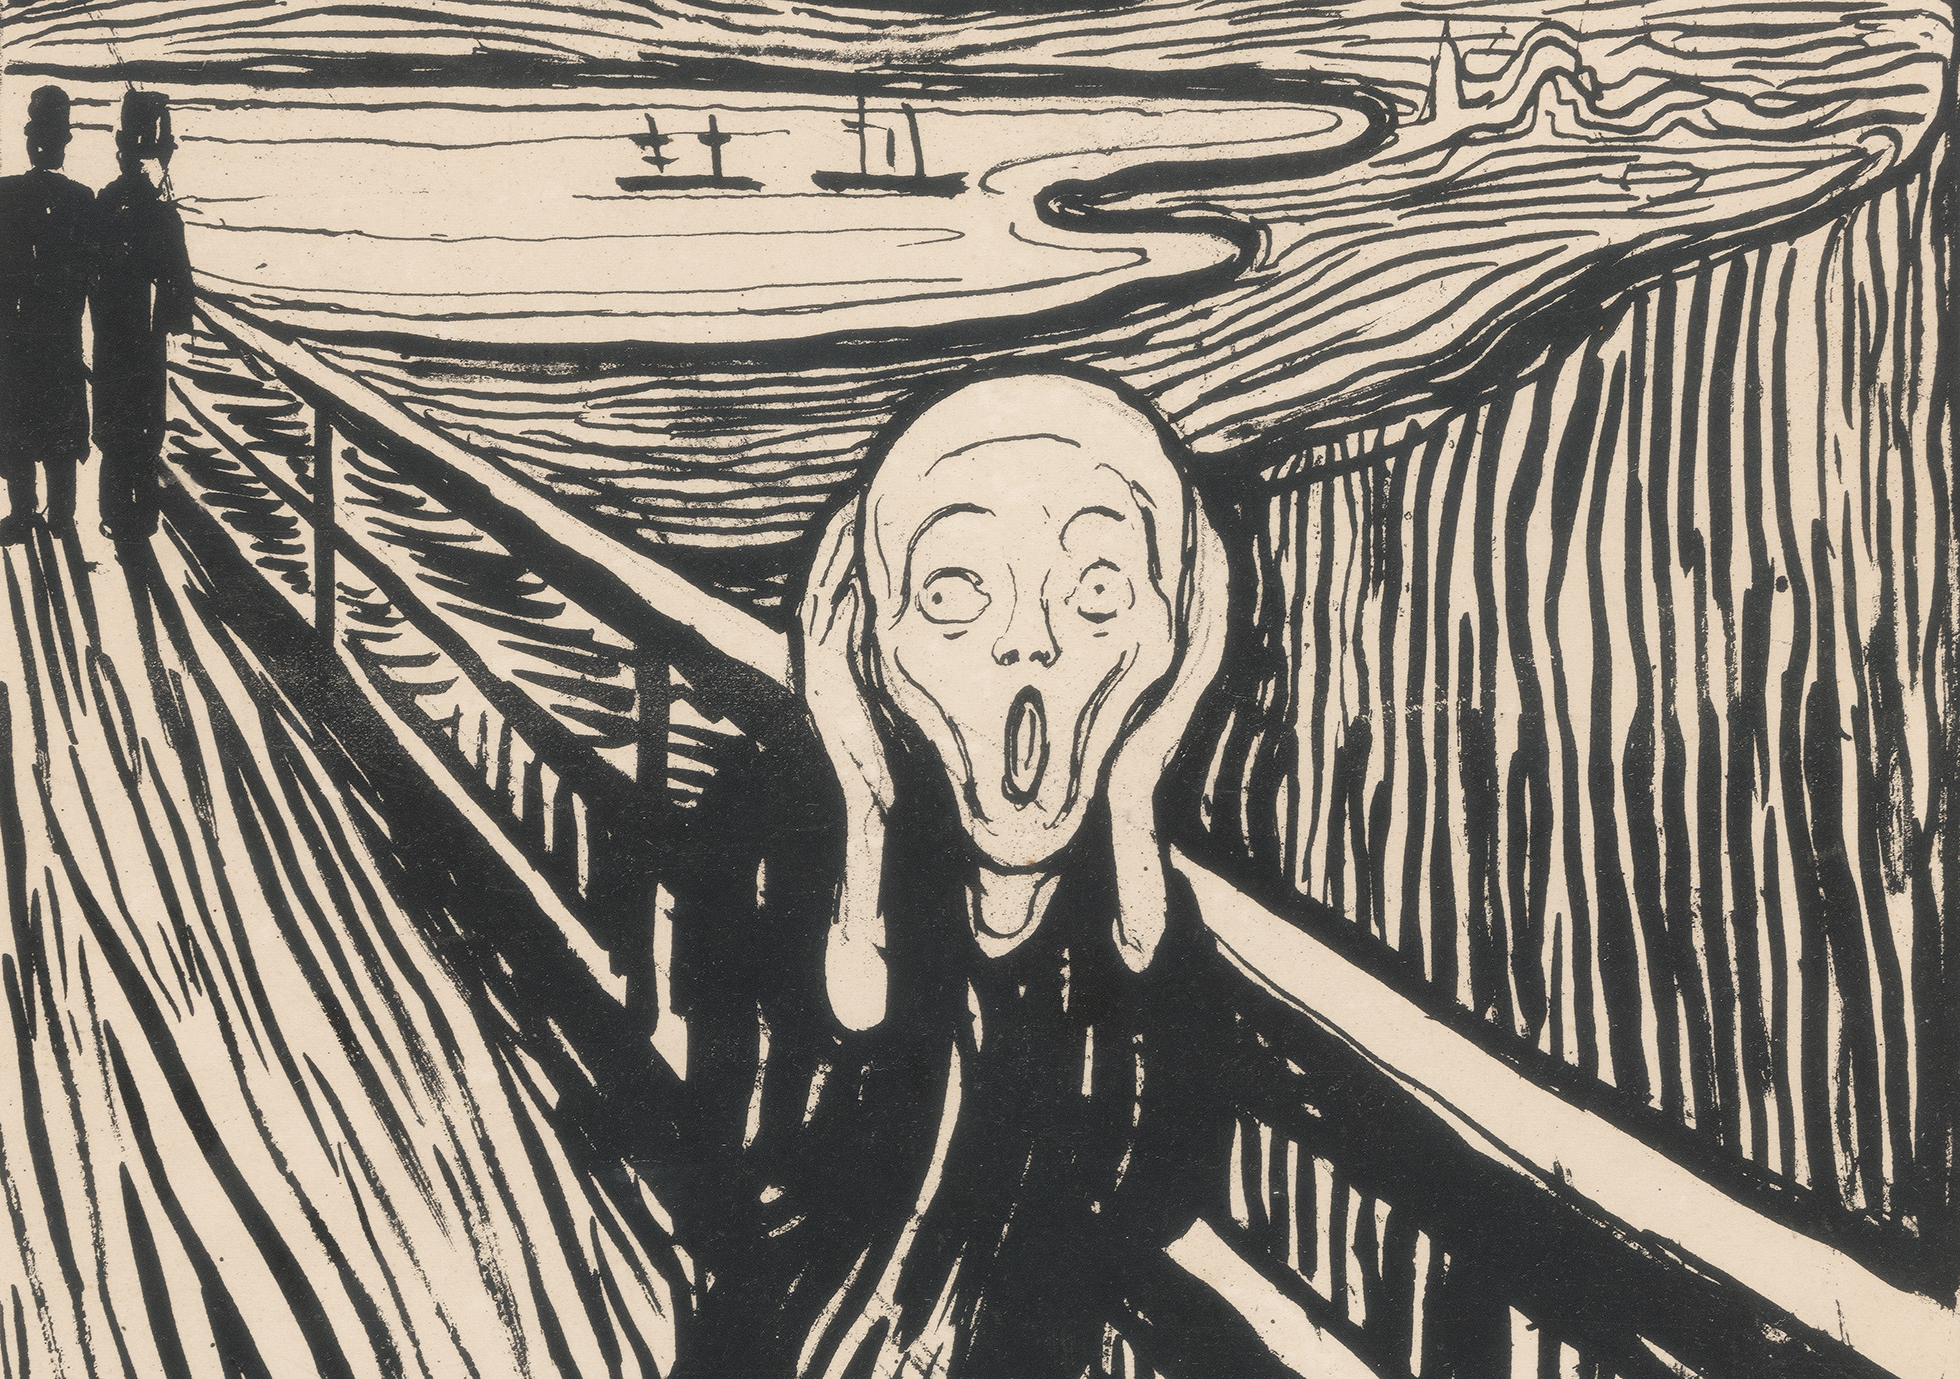 10 things you may not know about The Scream - British Museum Blog